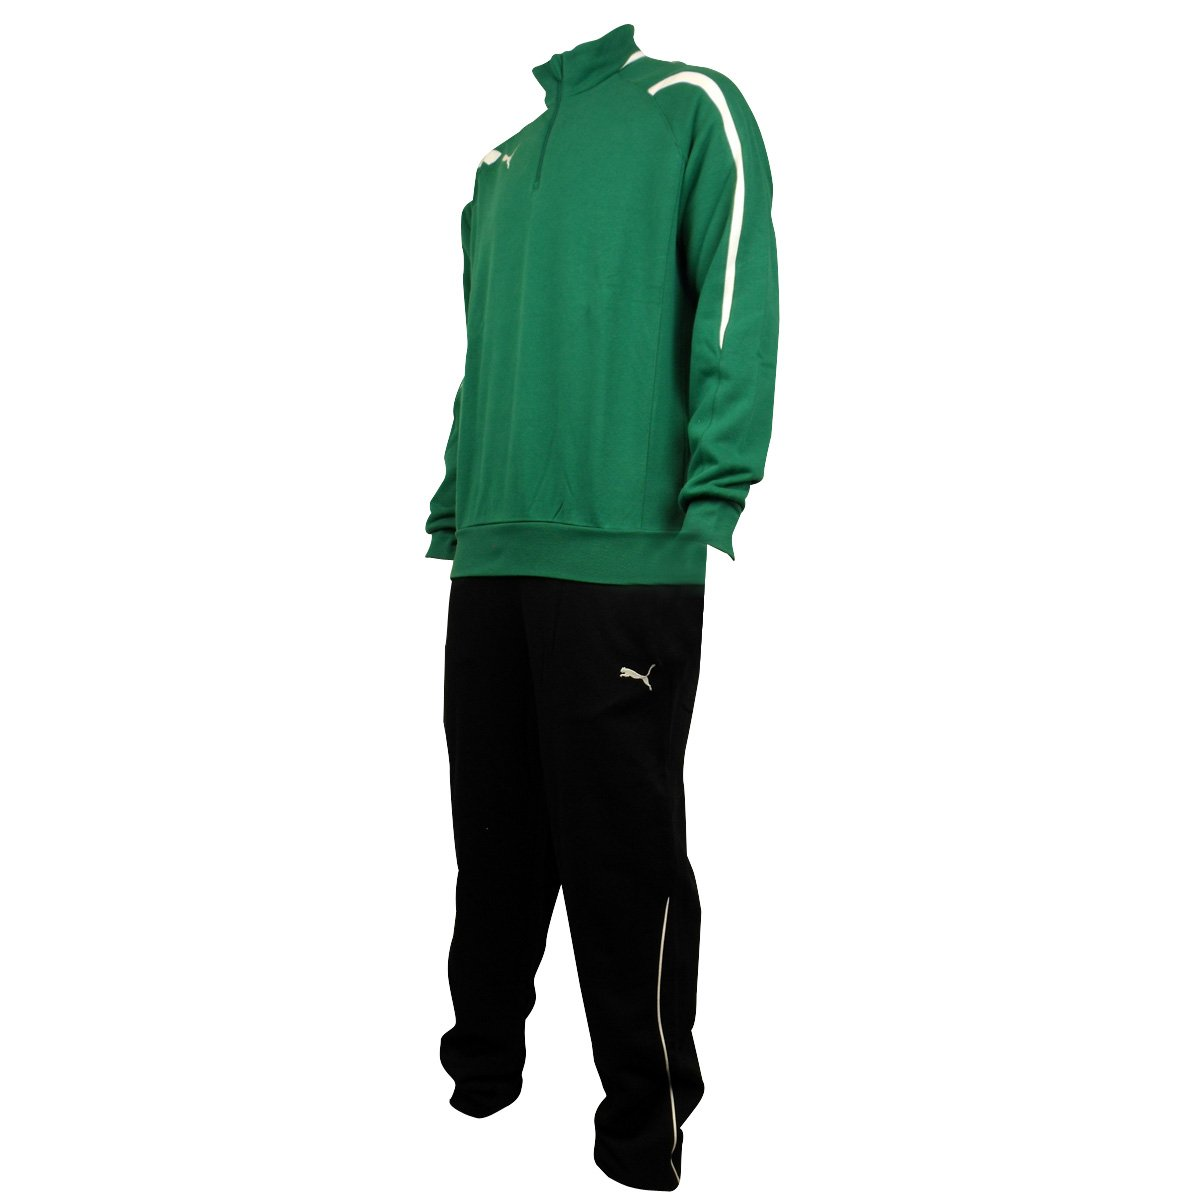 93d75803a223 Puma Men Powercat 5.10 Cotton Fleece Full Jogging Suit Tracksuit Black  Green XXL  Amazon.co.uk  Clothing